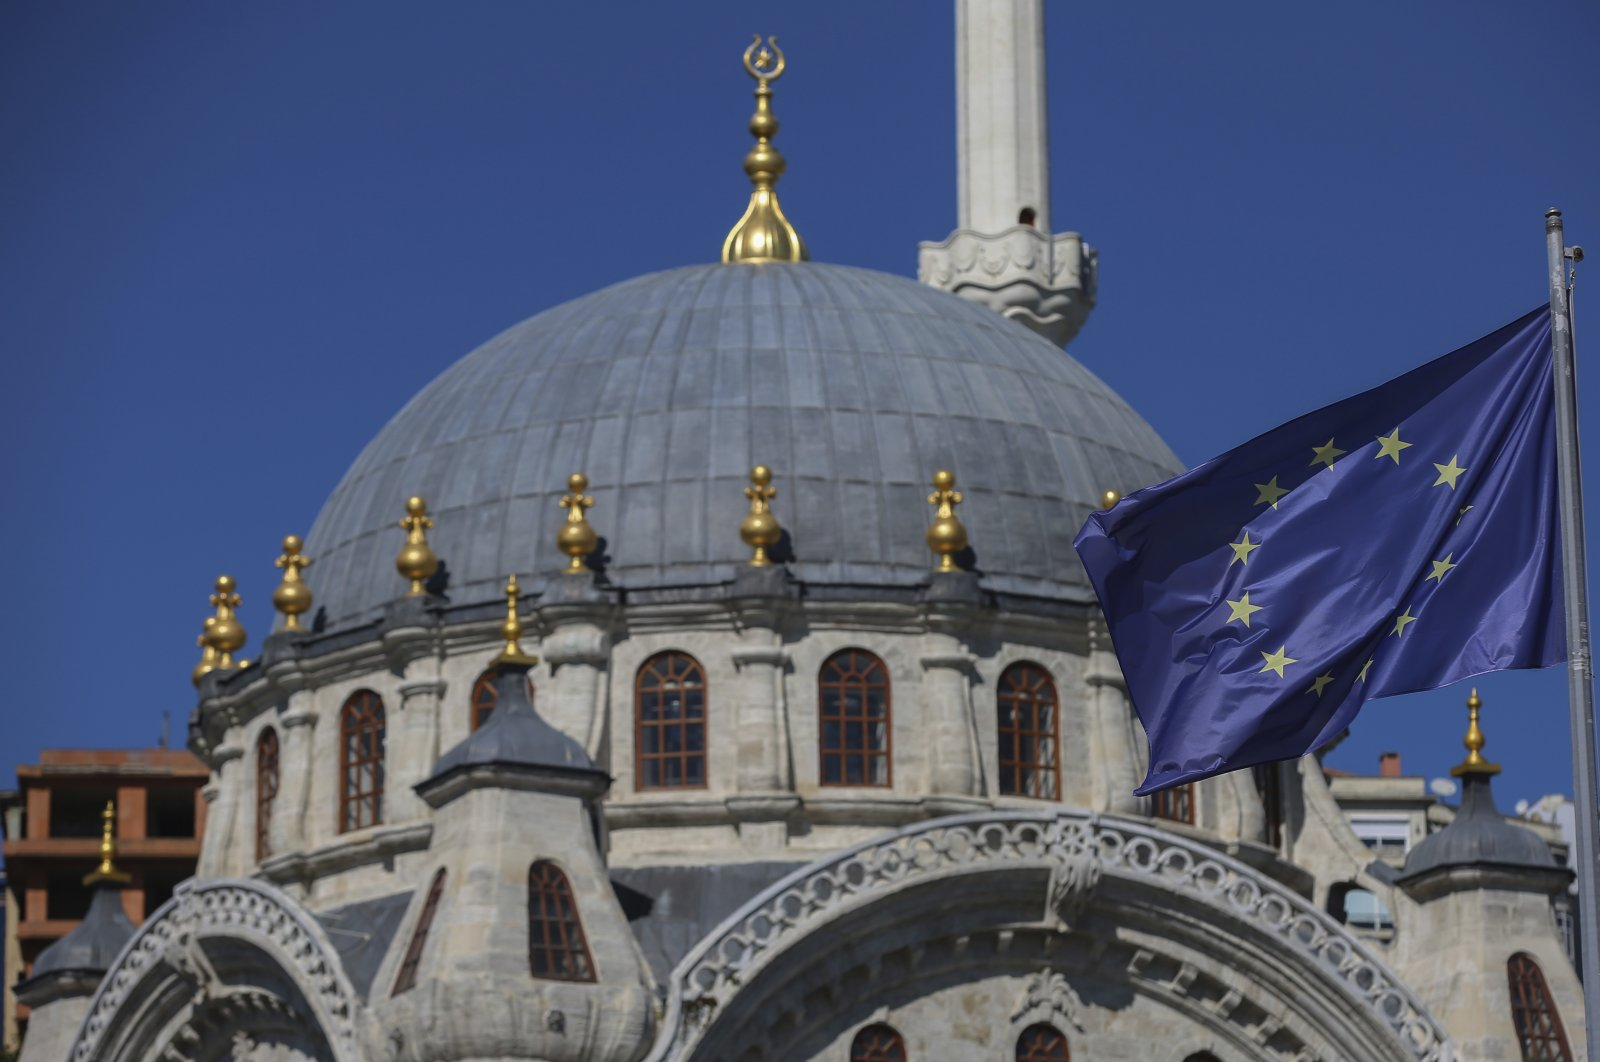 A European Union flag flaps in the wind in front of Nispetiye Mosque in Istanbul, Turkey, Oct. 12, 2017. (AP Photo)